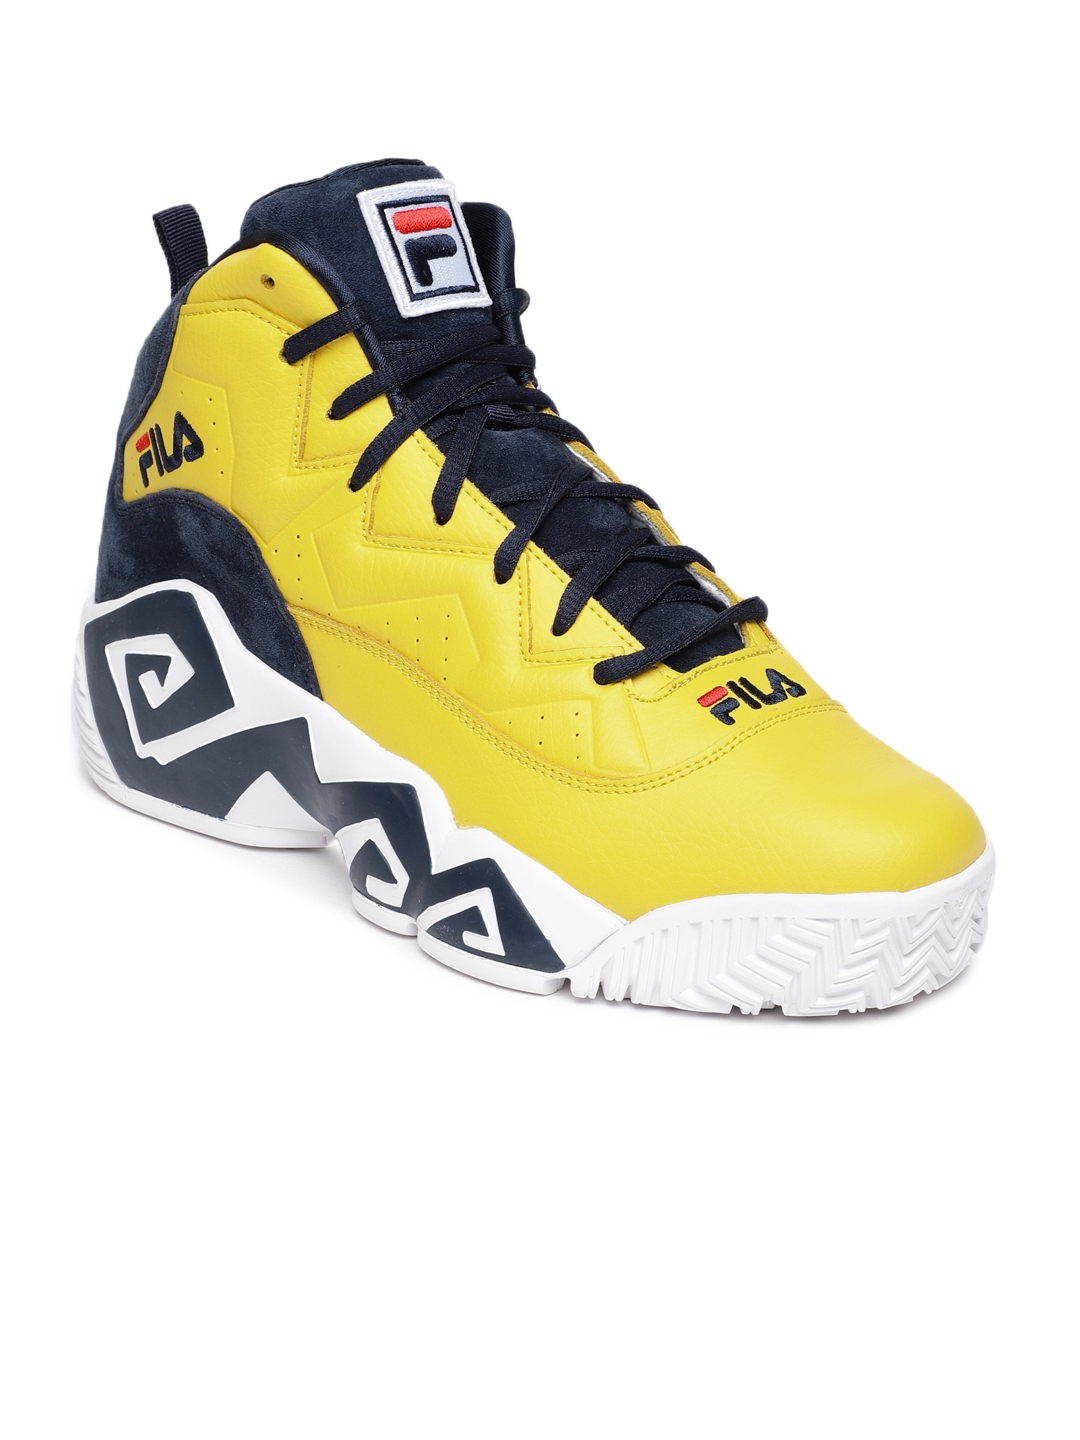 a32015725ebc Buy FILA Men Yellow Solid Synthetic Leather MB Mid Top Sneakers ...